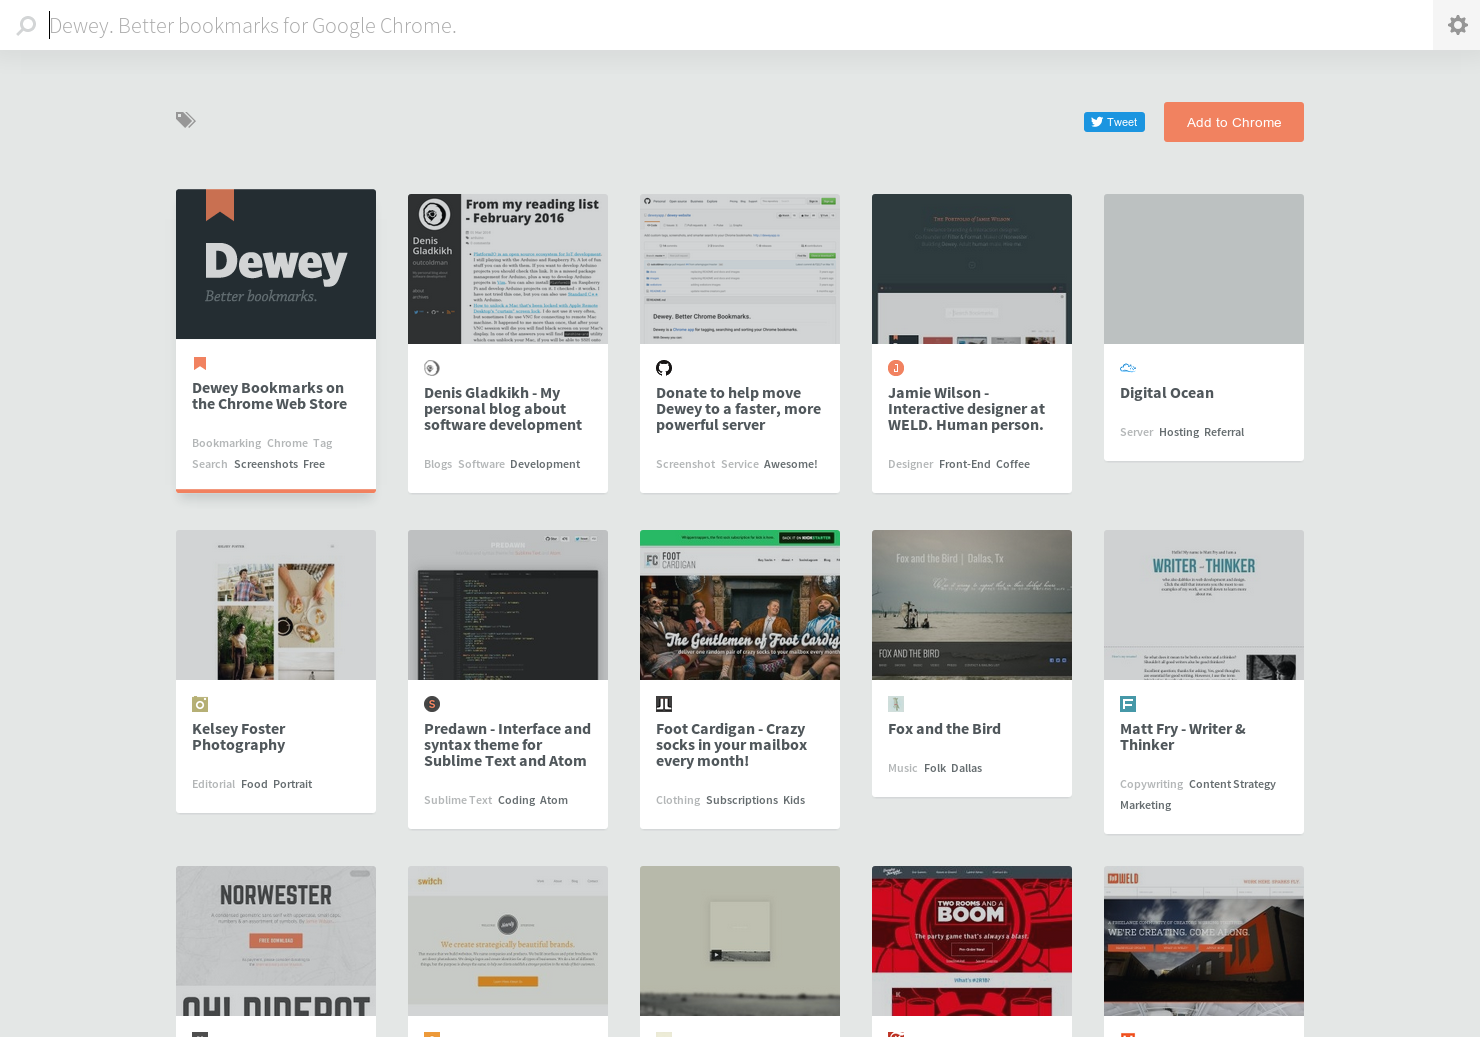 Dewey - Better bookmarks for Google Chrome | Product Hunt